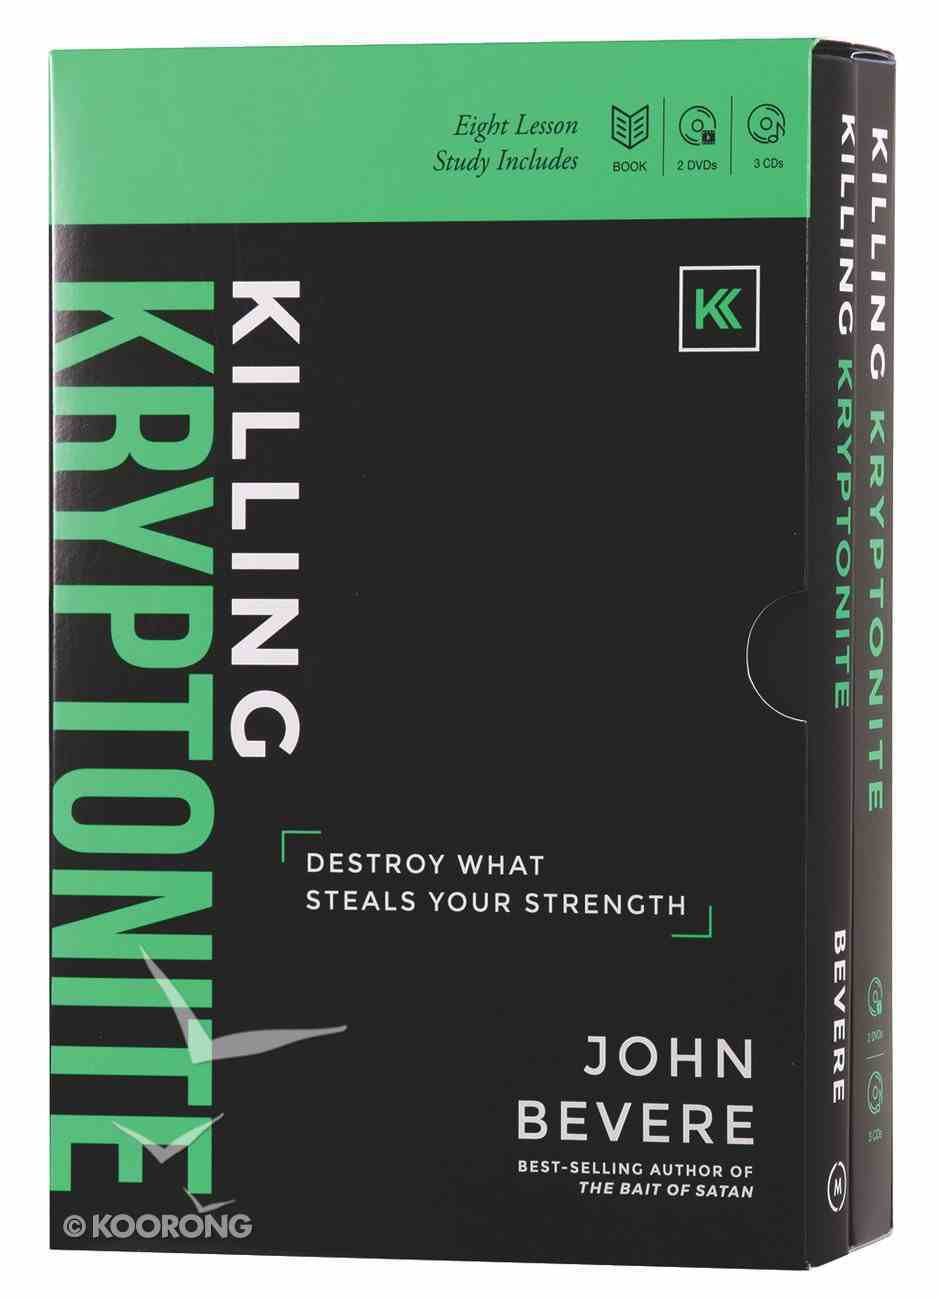 Killing Kryptonite: Includes 8 Lessons on 2 DVDS & 8 Lessons on 3 CDS & Hardcover Book (Multimedia Study) Pack